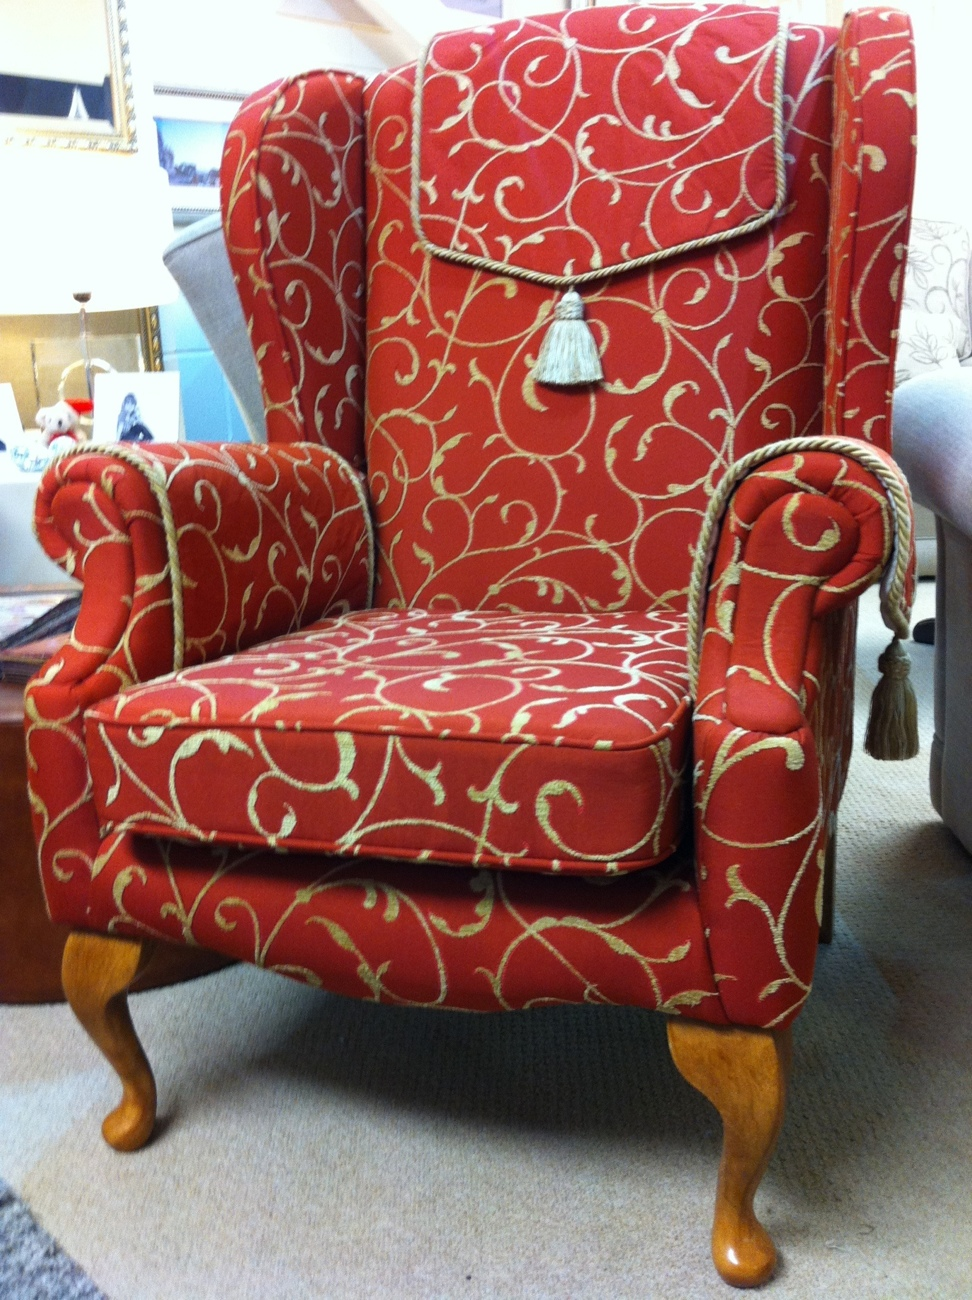 A1 Jim Dickens Fabric Chair Ralvern Sofa And Chairs Lounge Designers Cannock Staffordshire